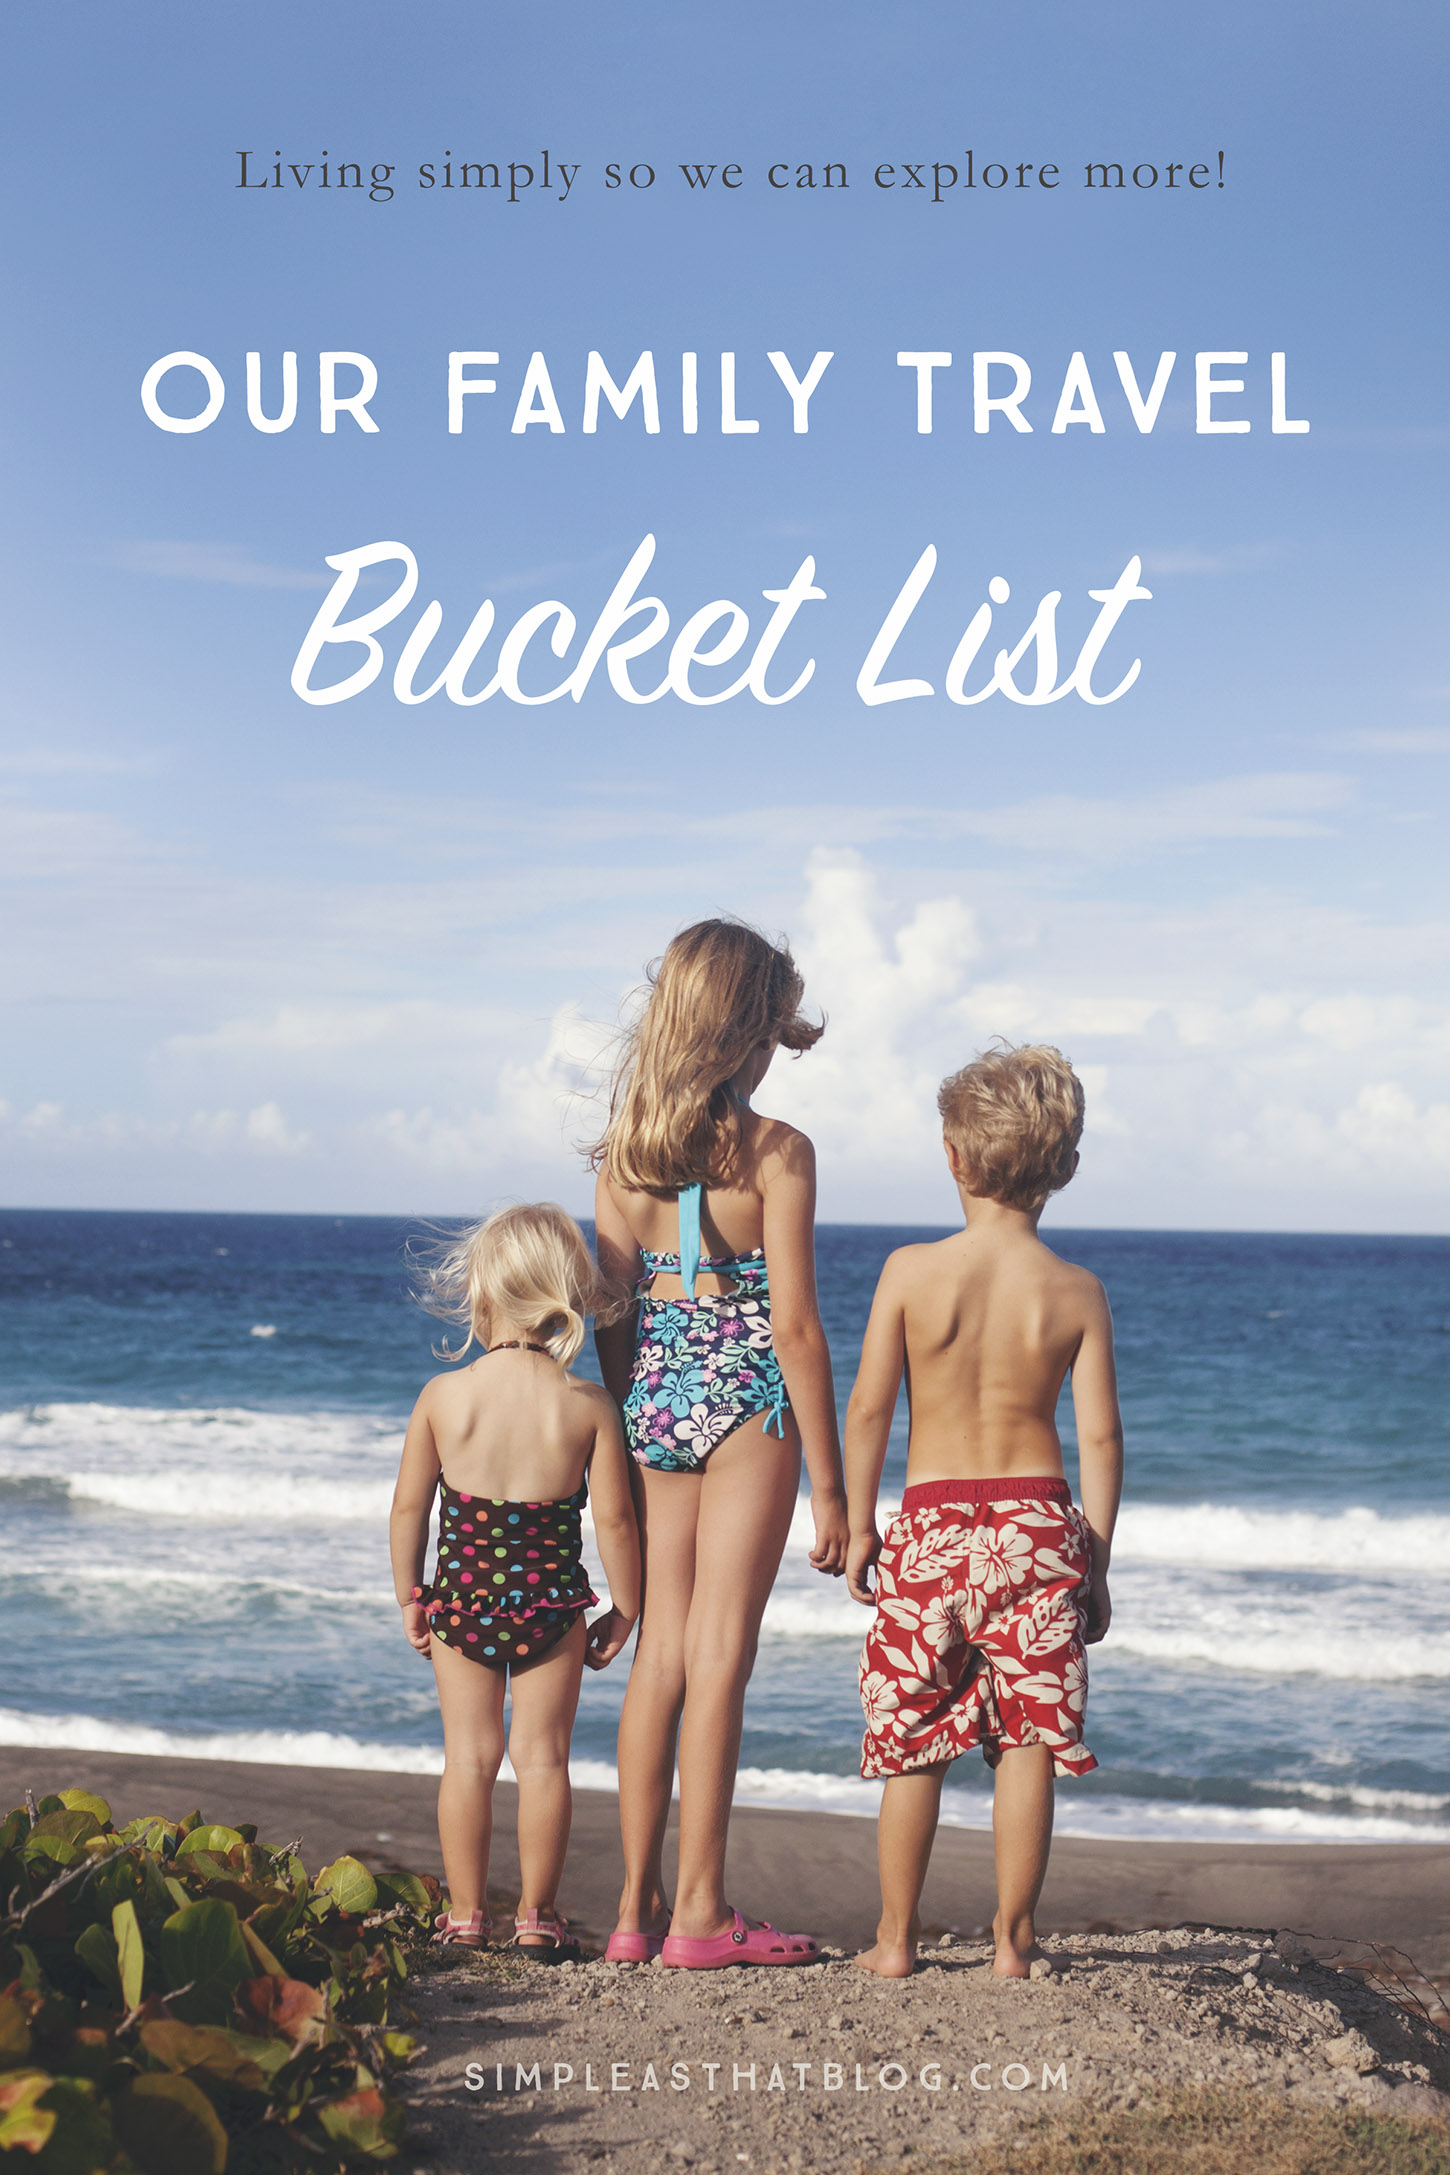 Check Out A Few Of The Amazing Places We Have Added To Our Family Travel Bucket